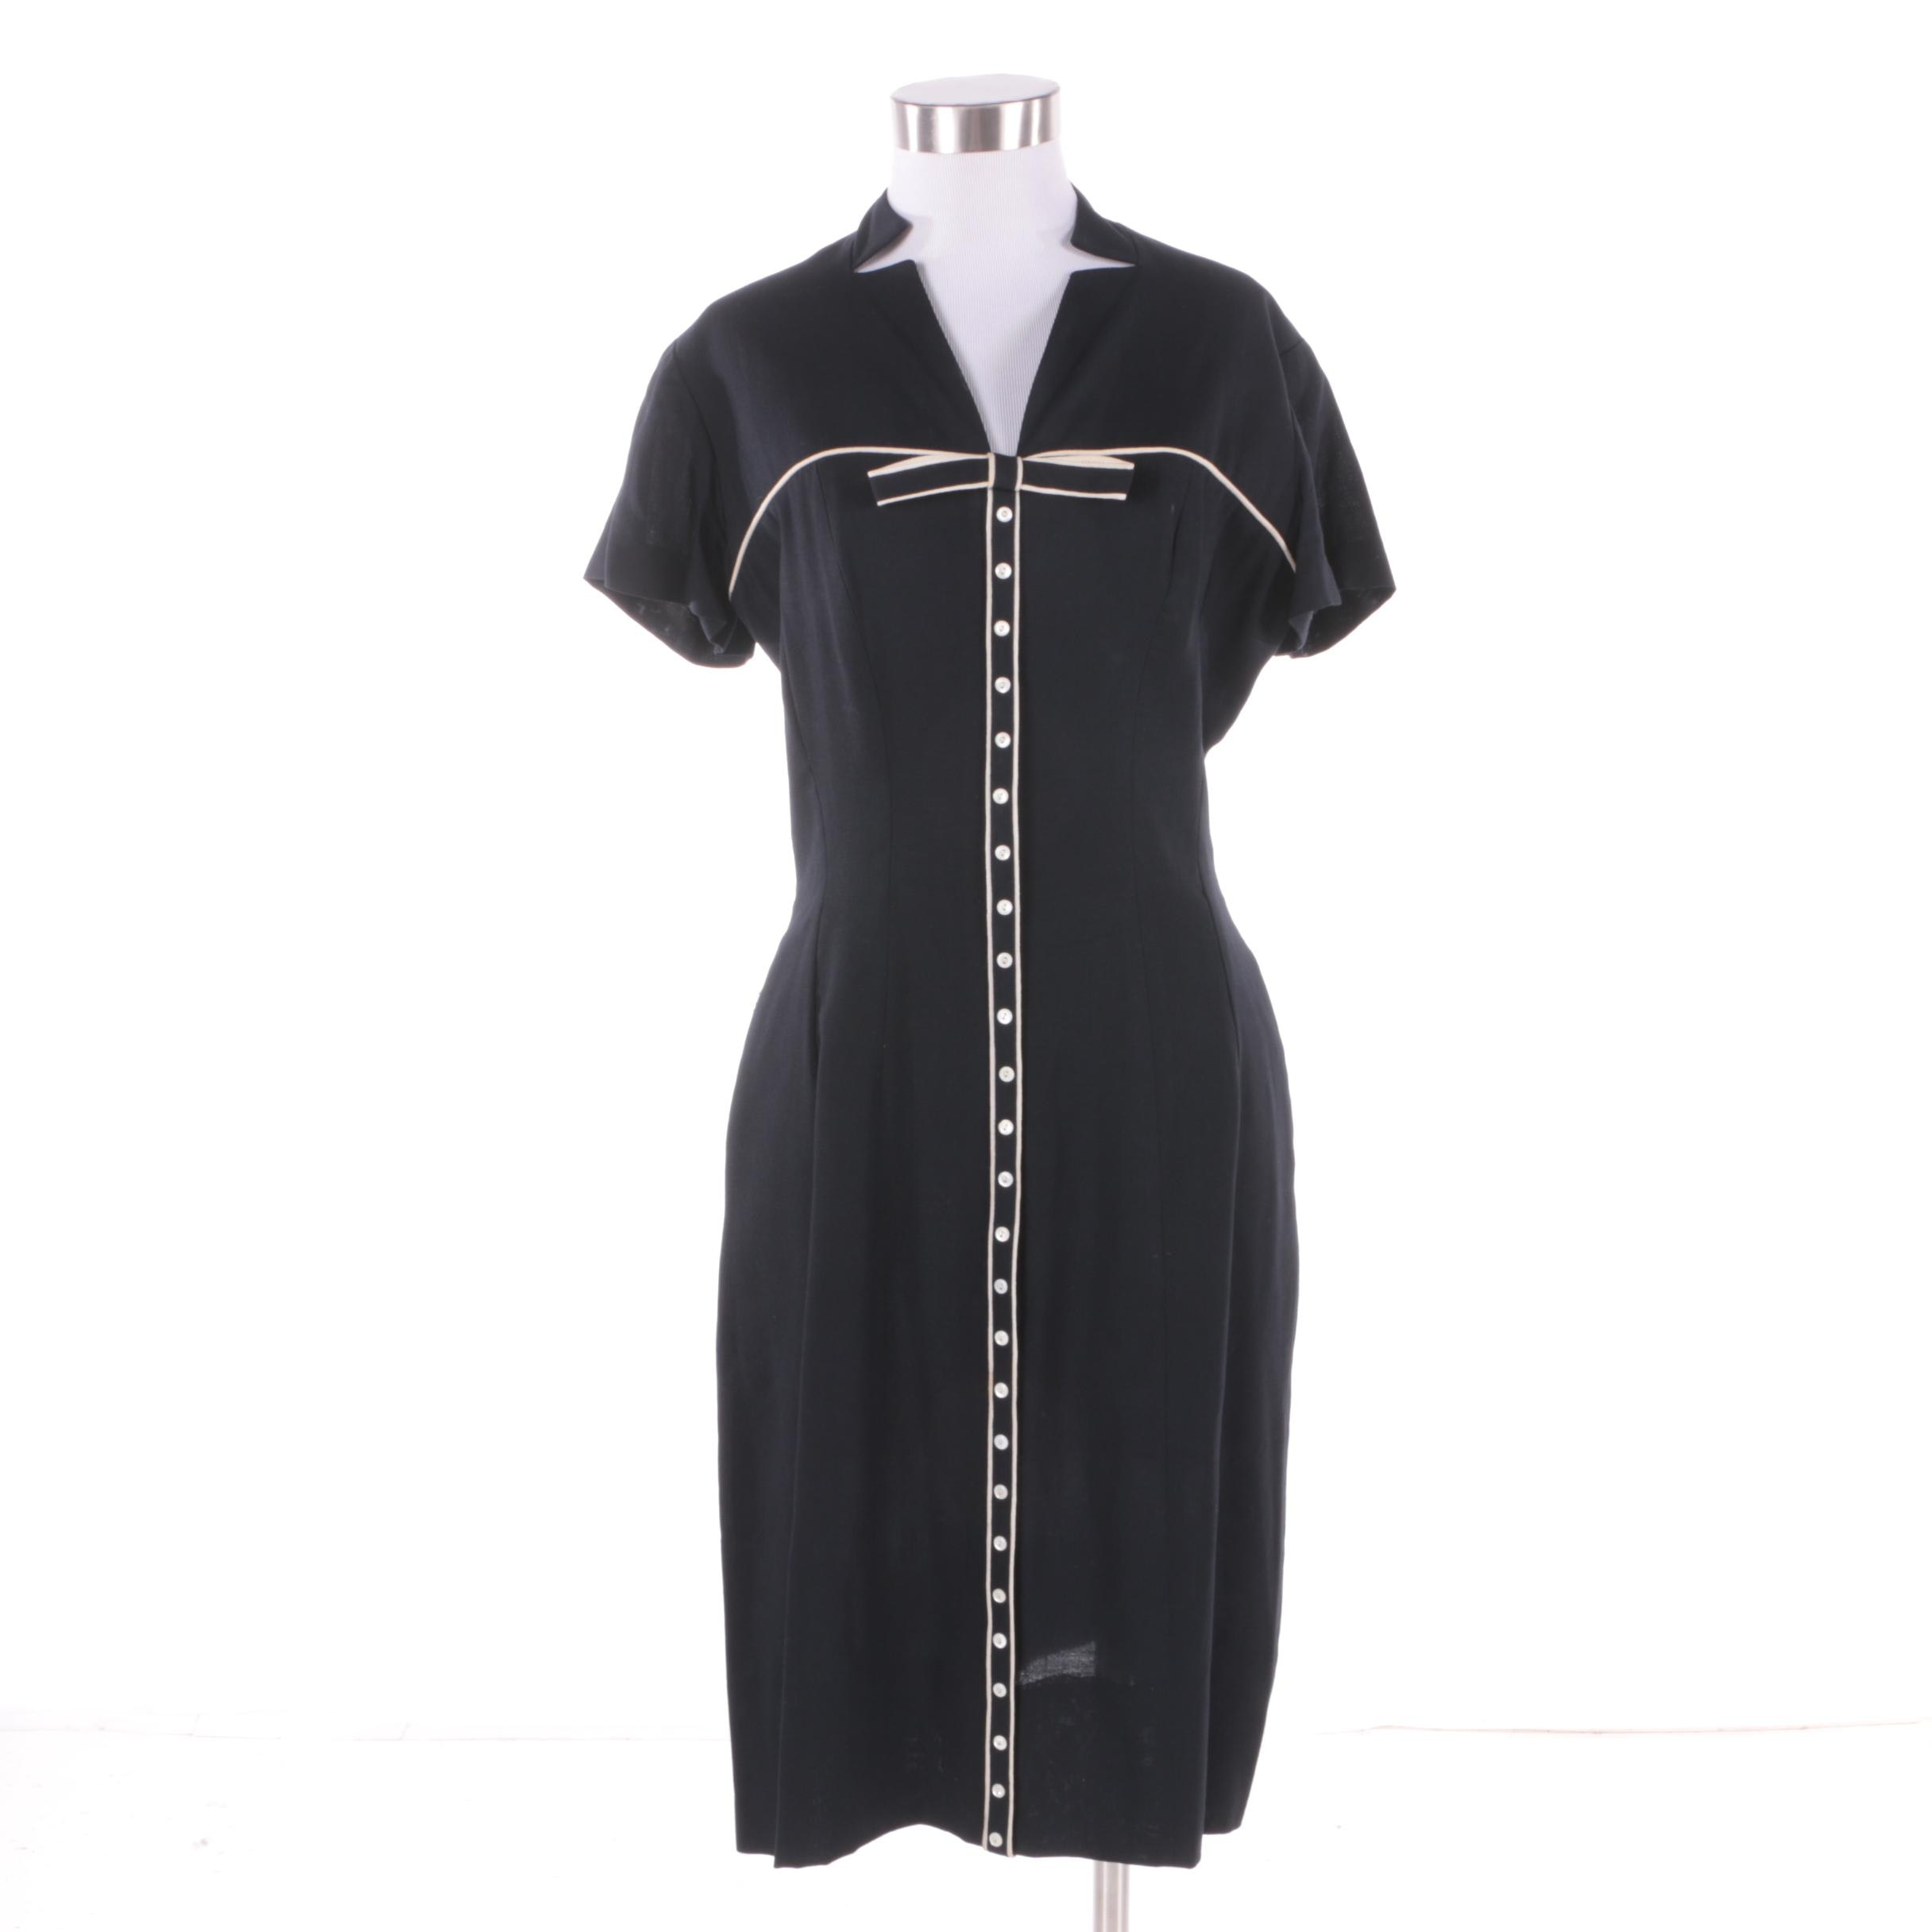 1950s Vintage Samuel Grossman Black with White Bow Piping Dress